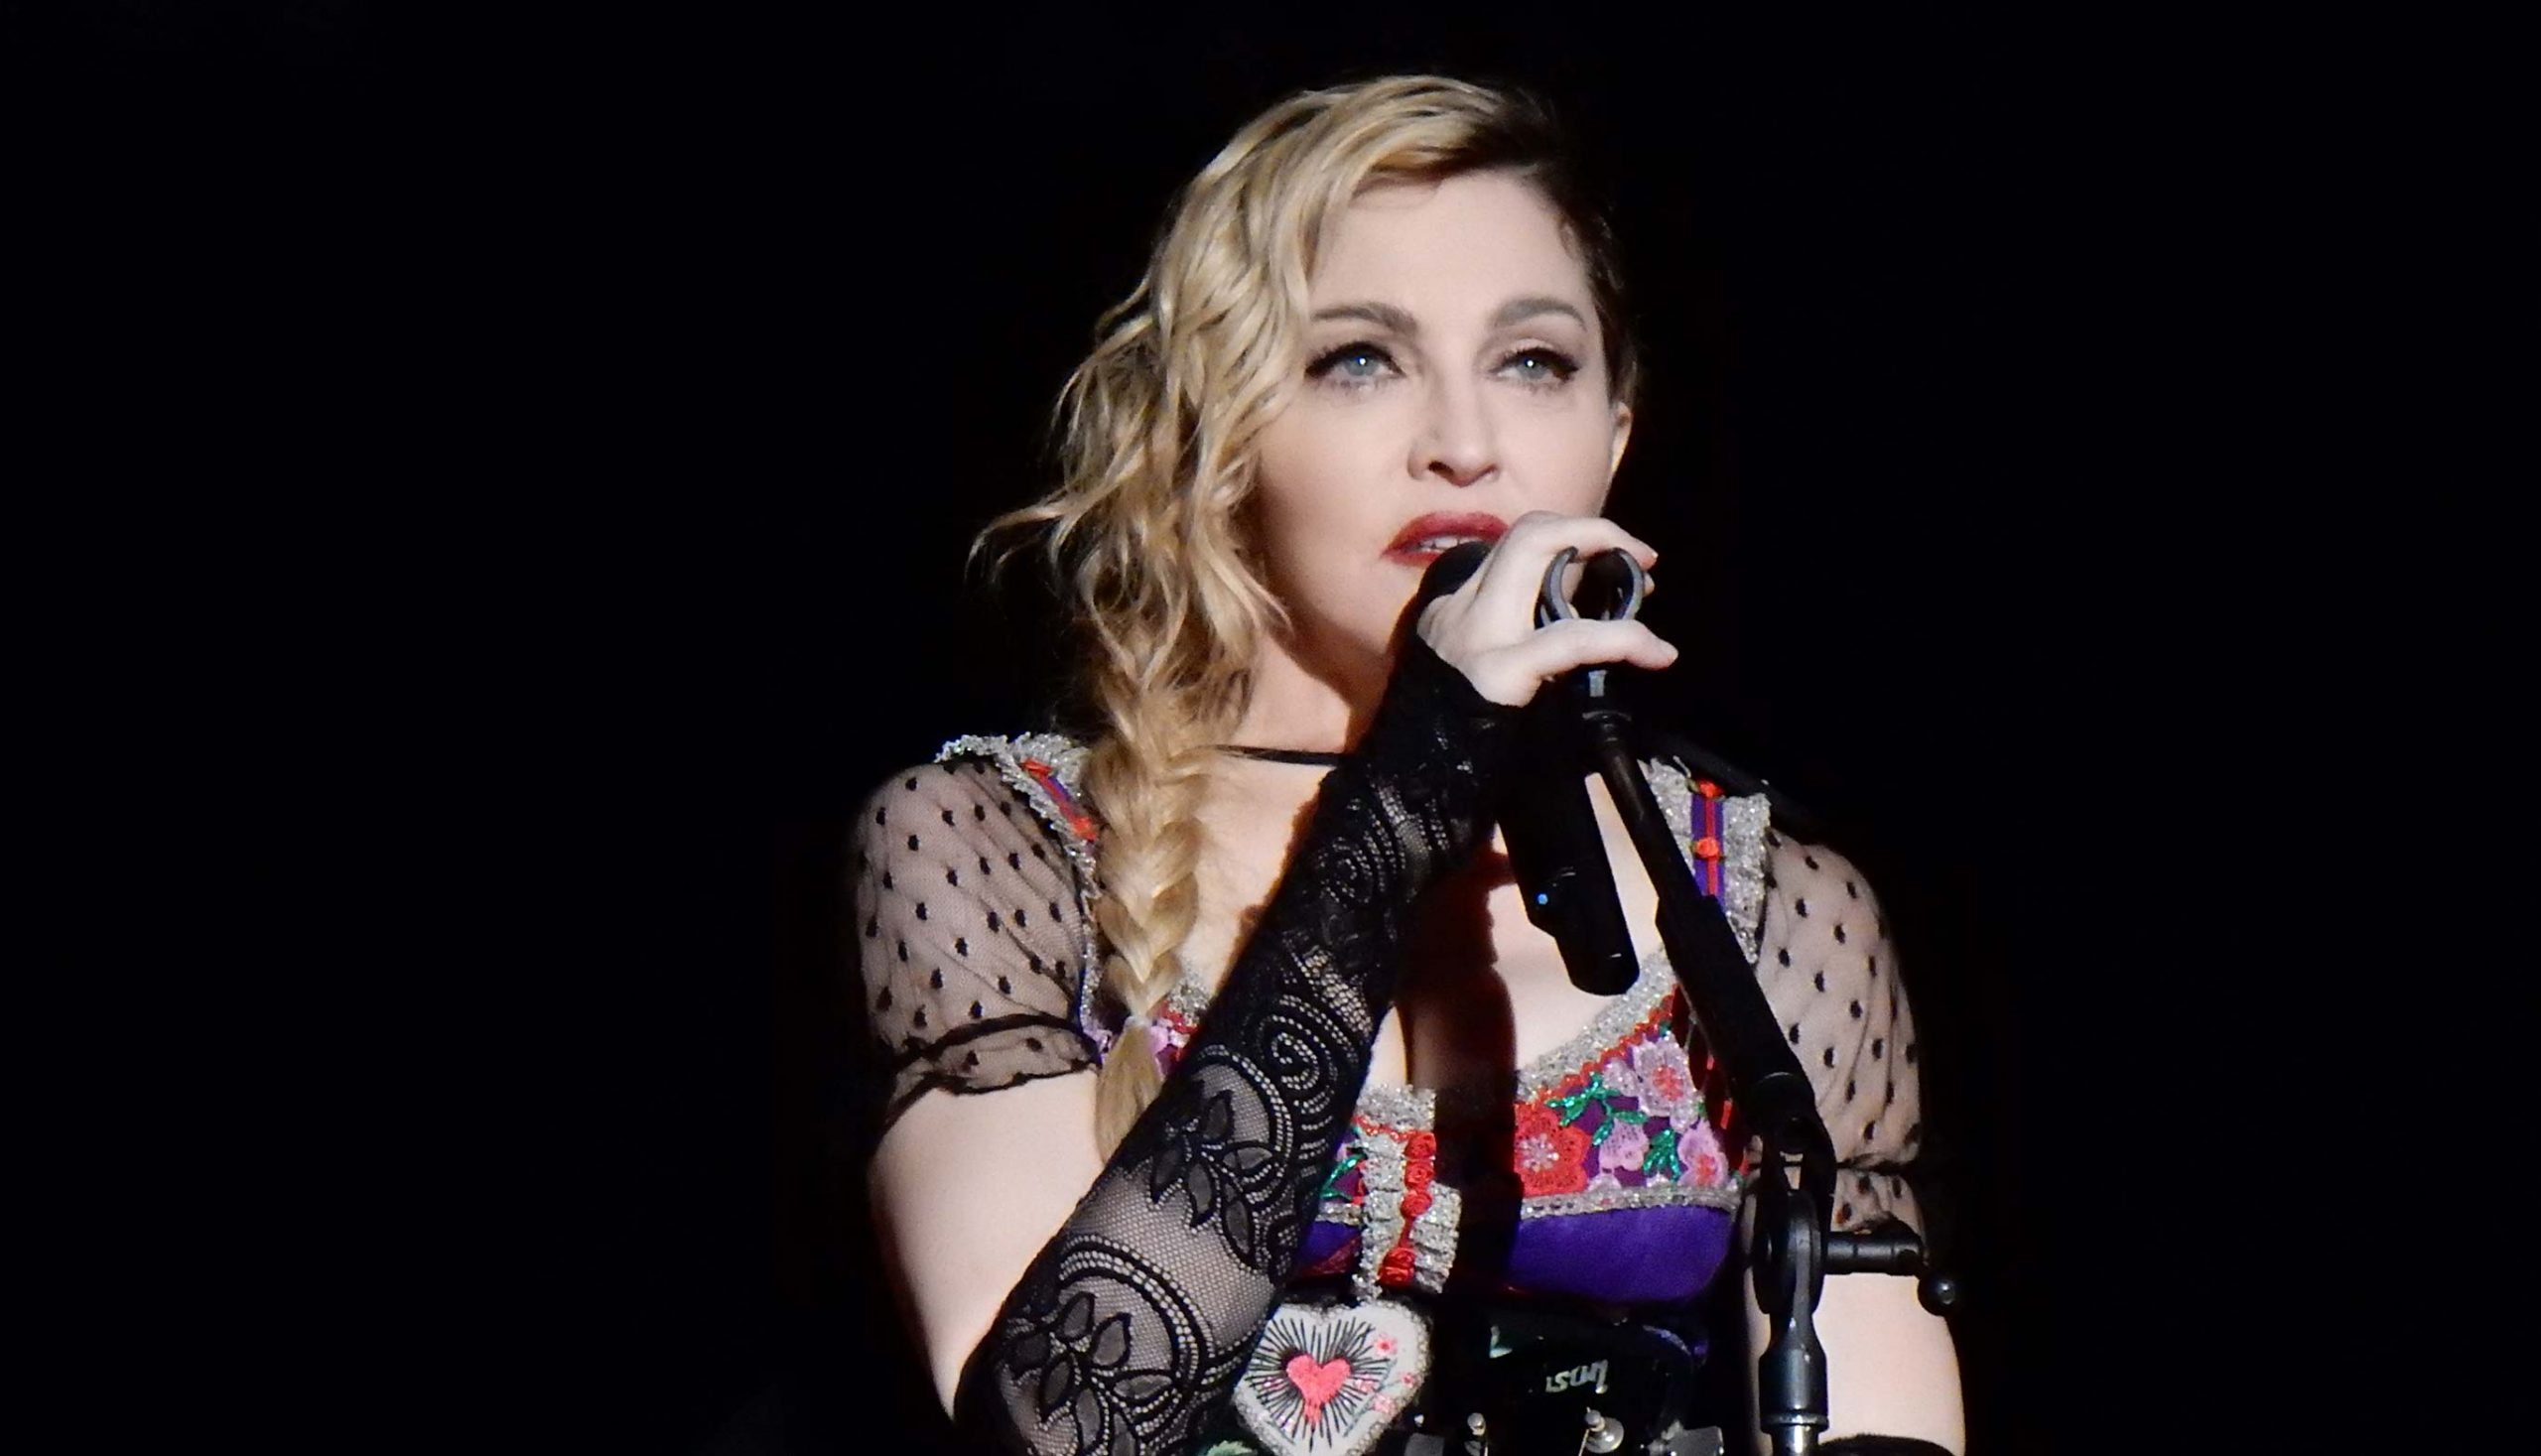 Madonna during Rebel Heart Tour 2015 in Stockholm, Sweden. Photo: chrisweger via Wikimedia Commons (CC BY-SA 2.0) (CC BY-SA 2.0)